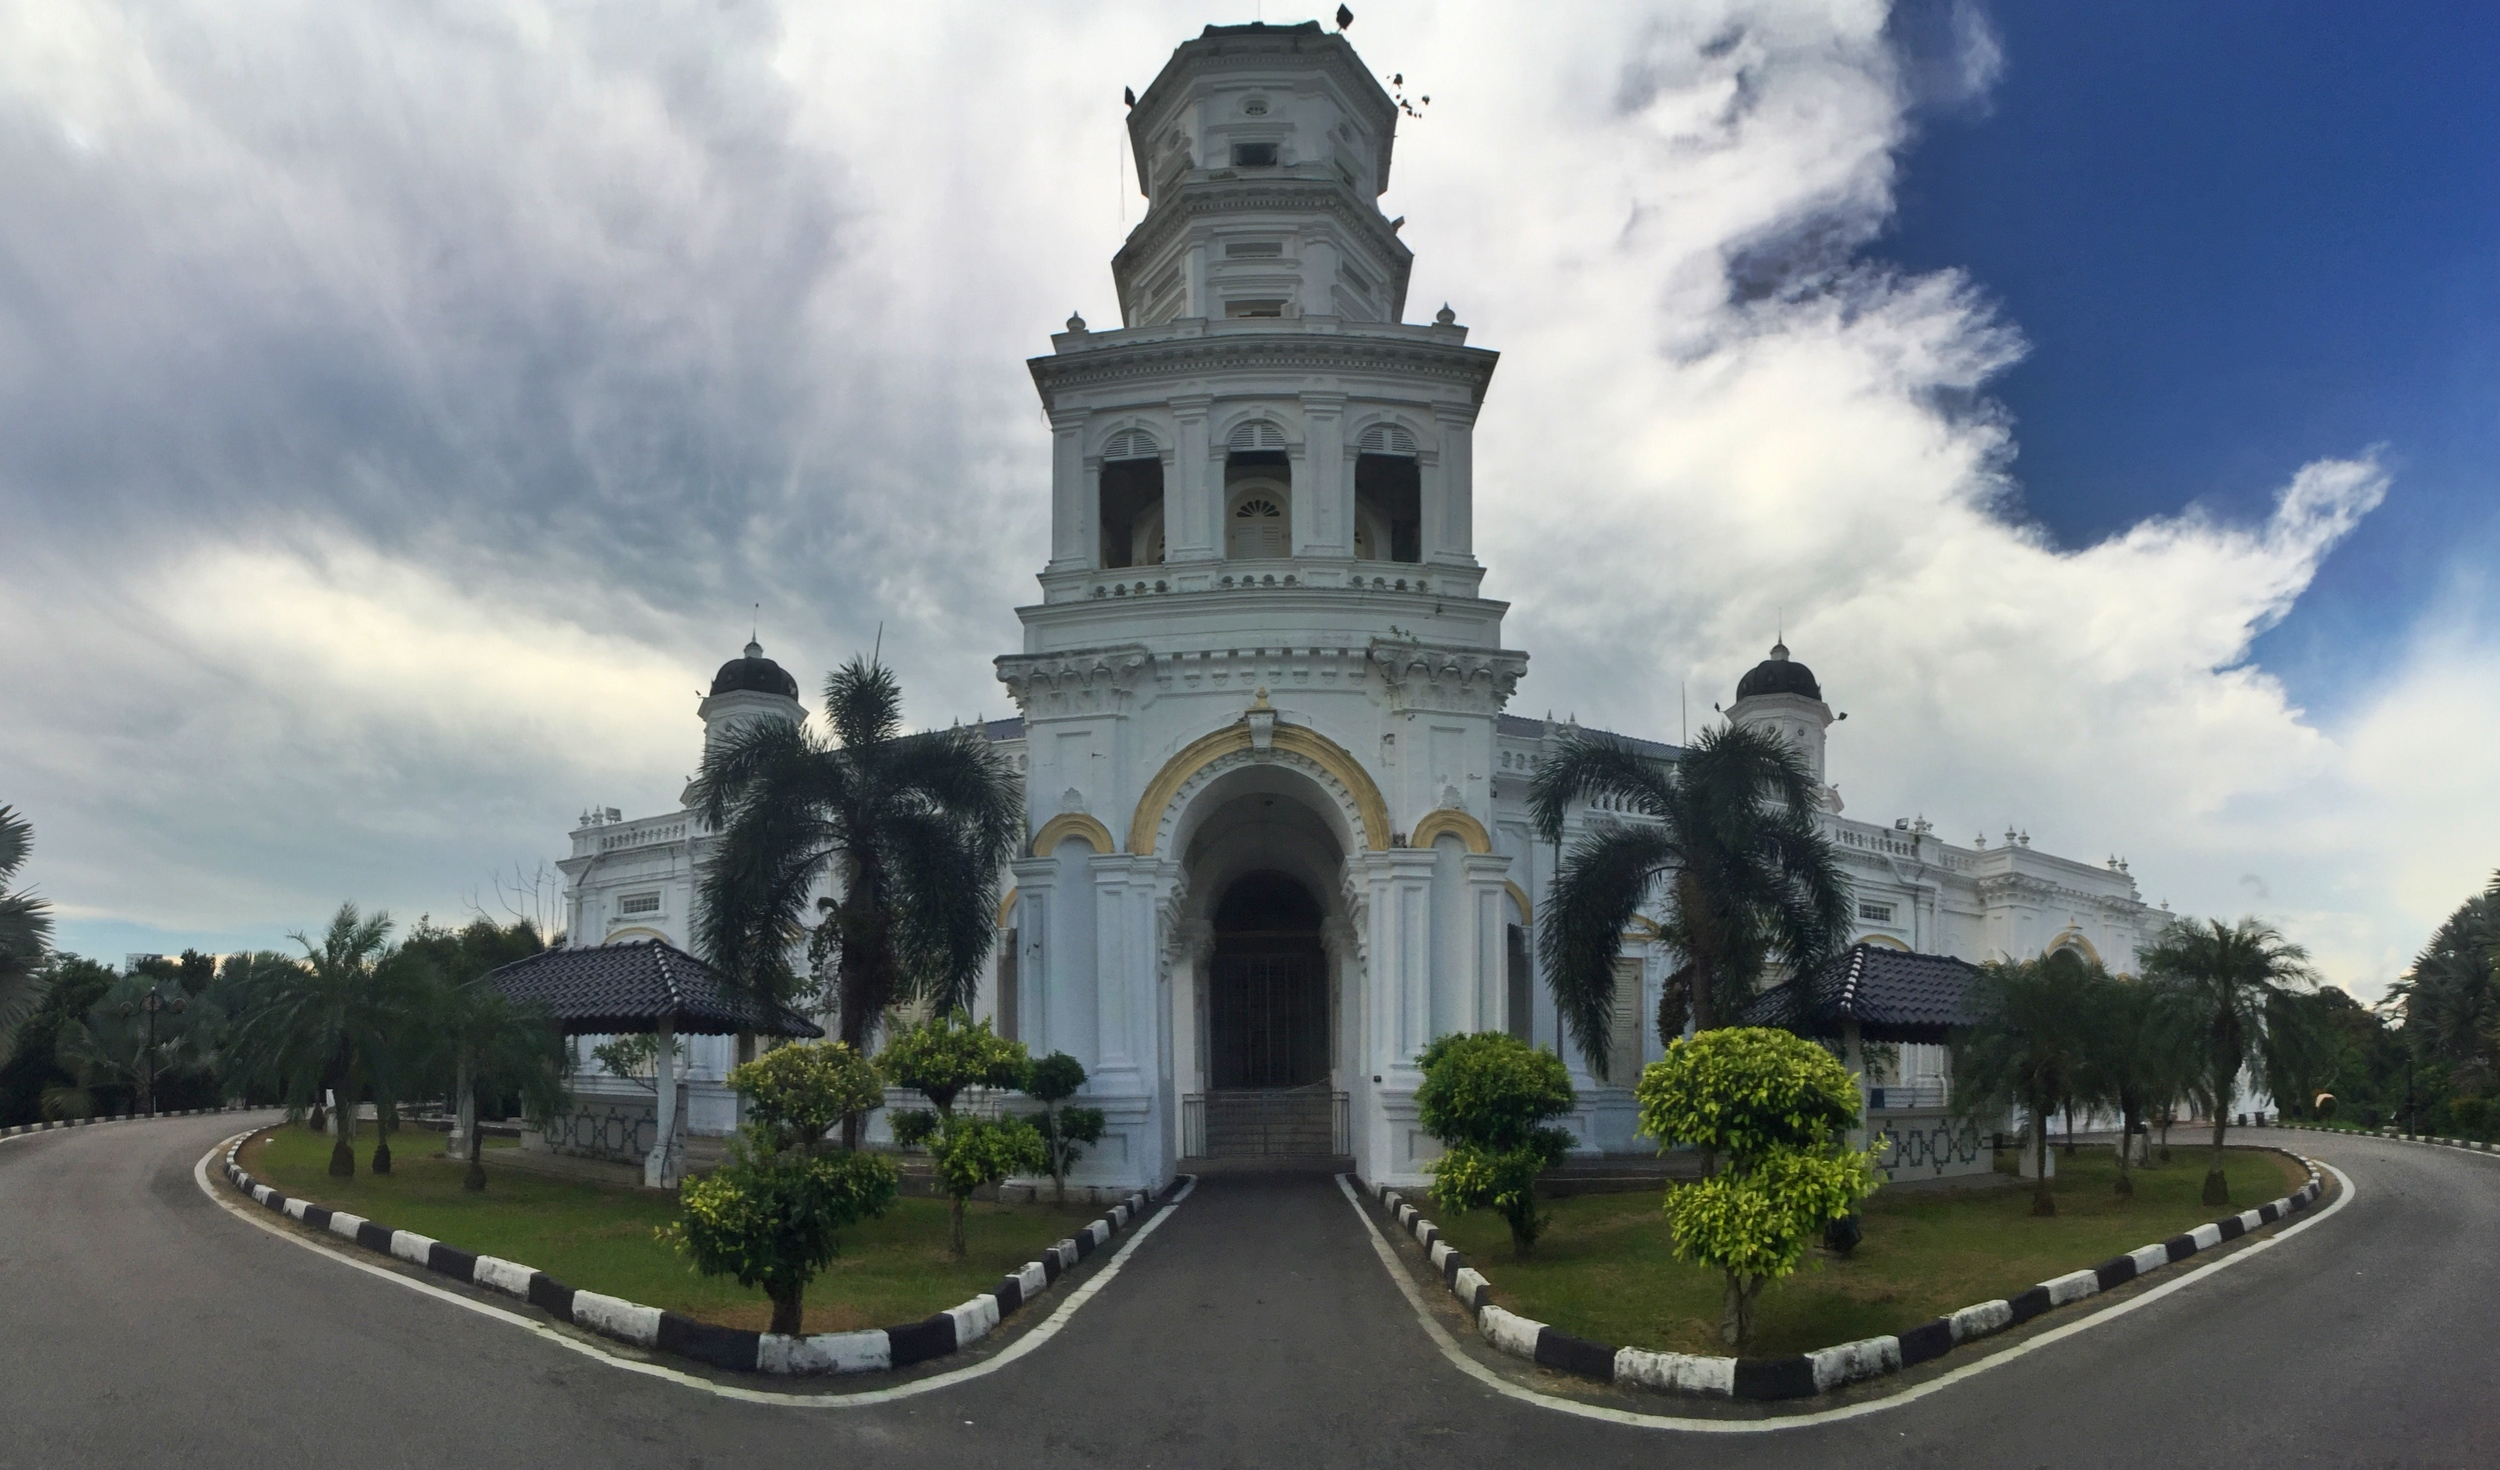 The Sultan Abu Bakar Mosque